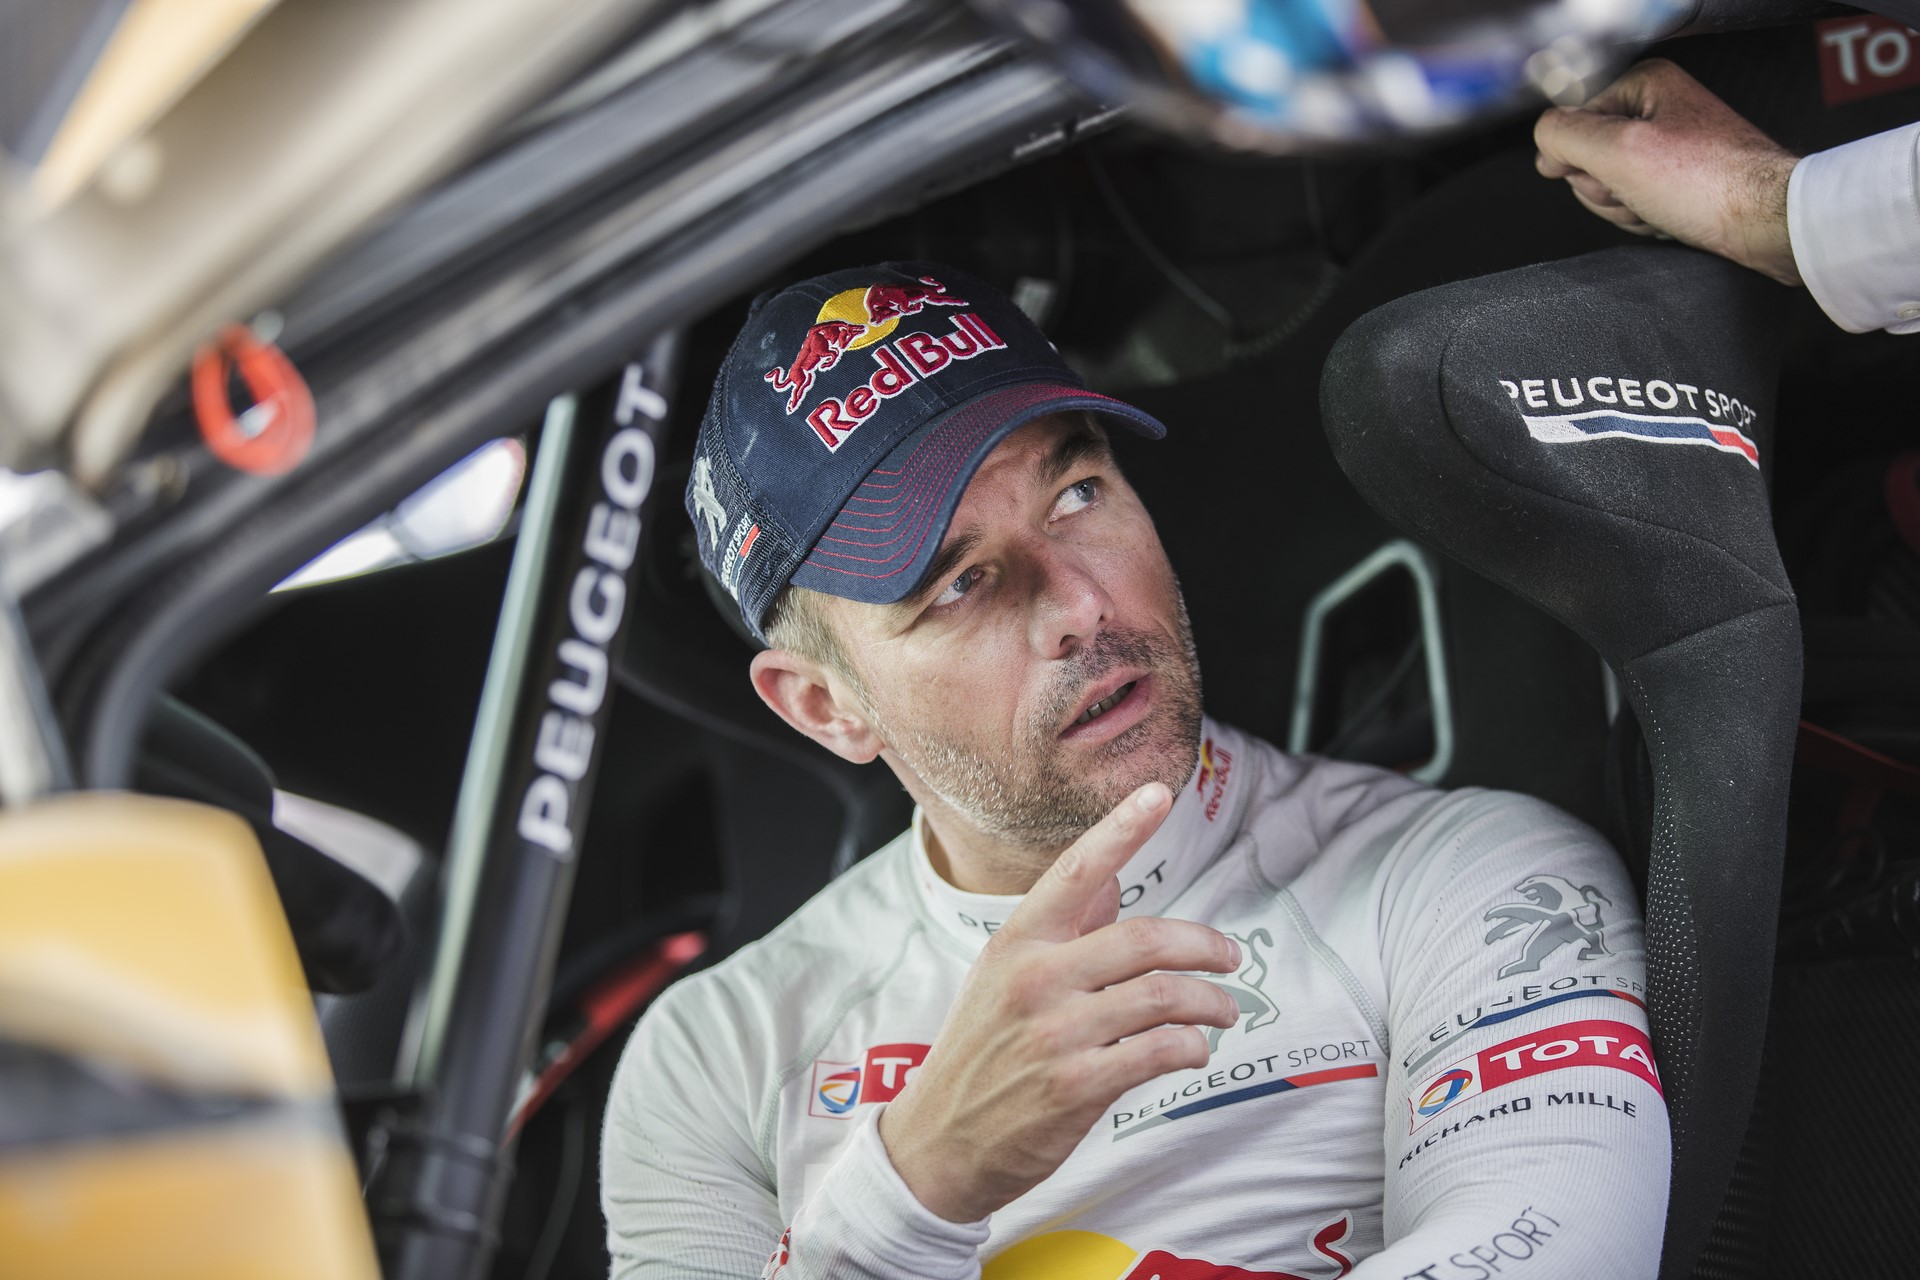 Sebastien Loeb (FRA) of Team Peugeot TOTAL seen  at the bivouac after stage 2 of Rally Dakar 2018 from Pisco to Pisco, Peru on January 7, 2018.